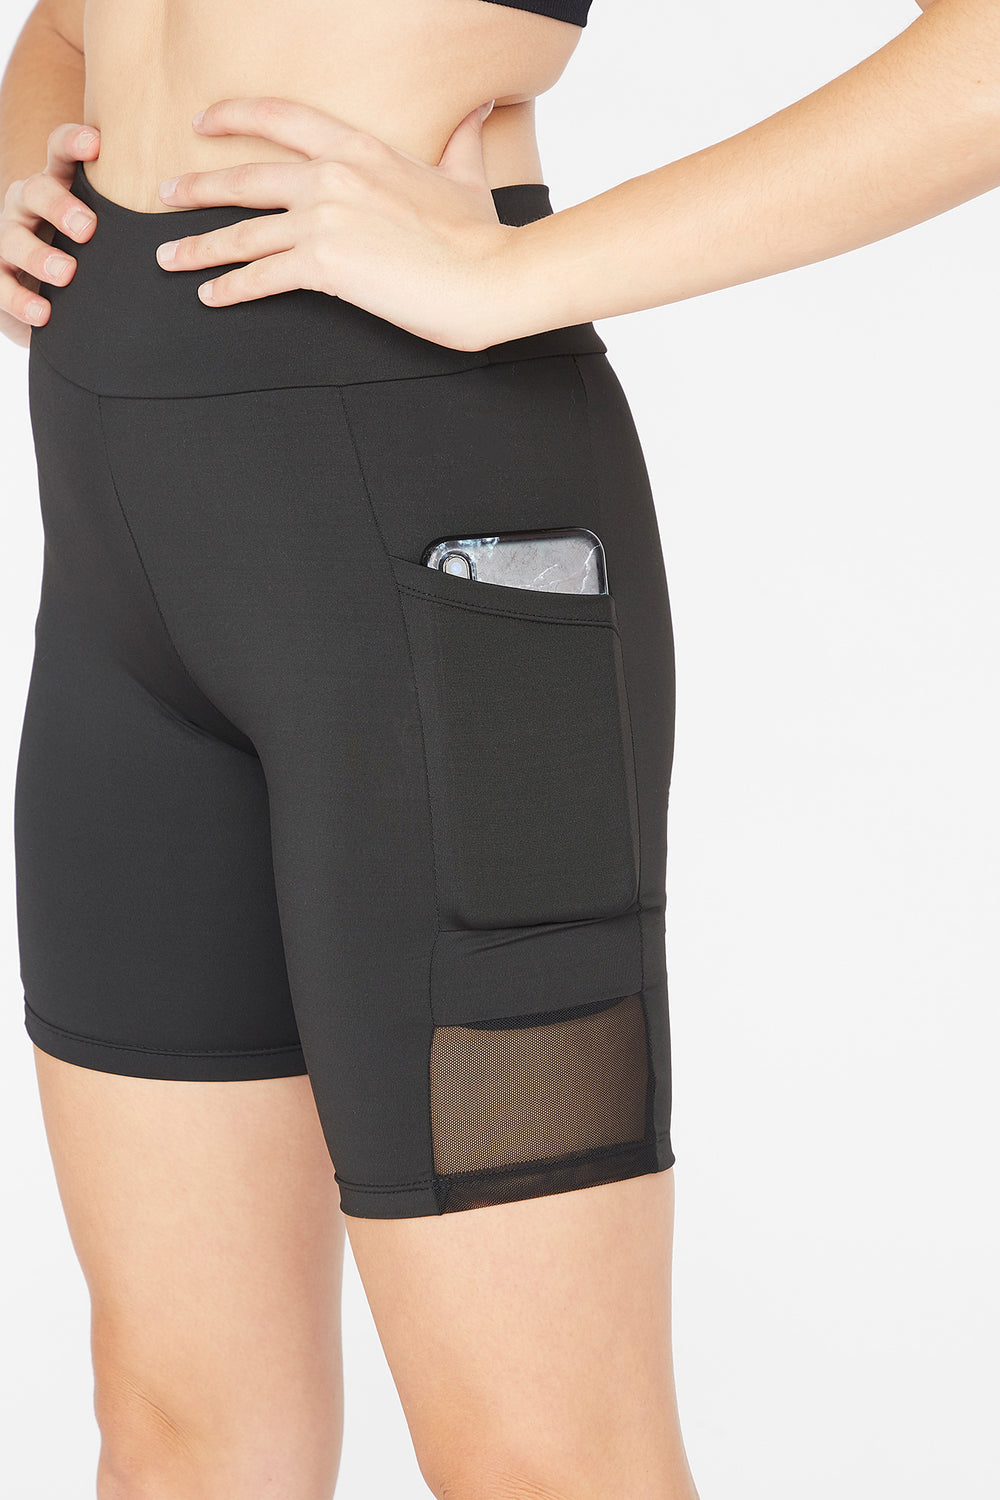 High-Rise Mesh Side Pocket Biker Short Black